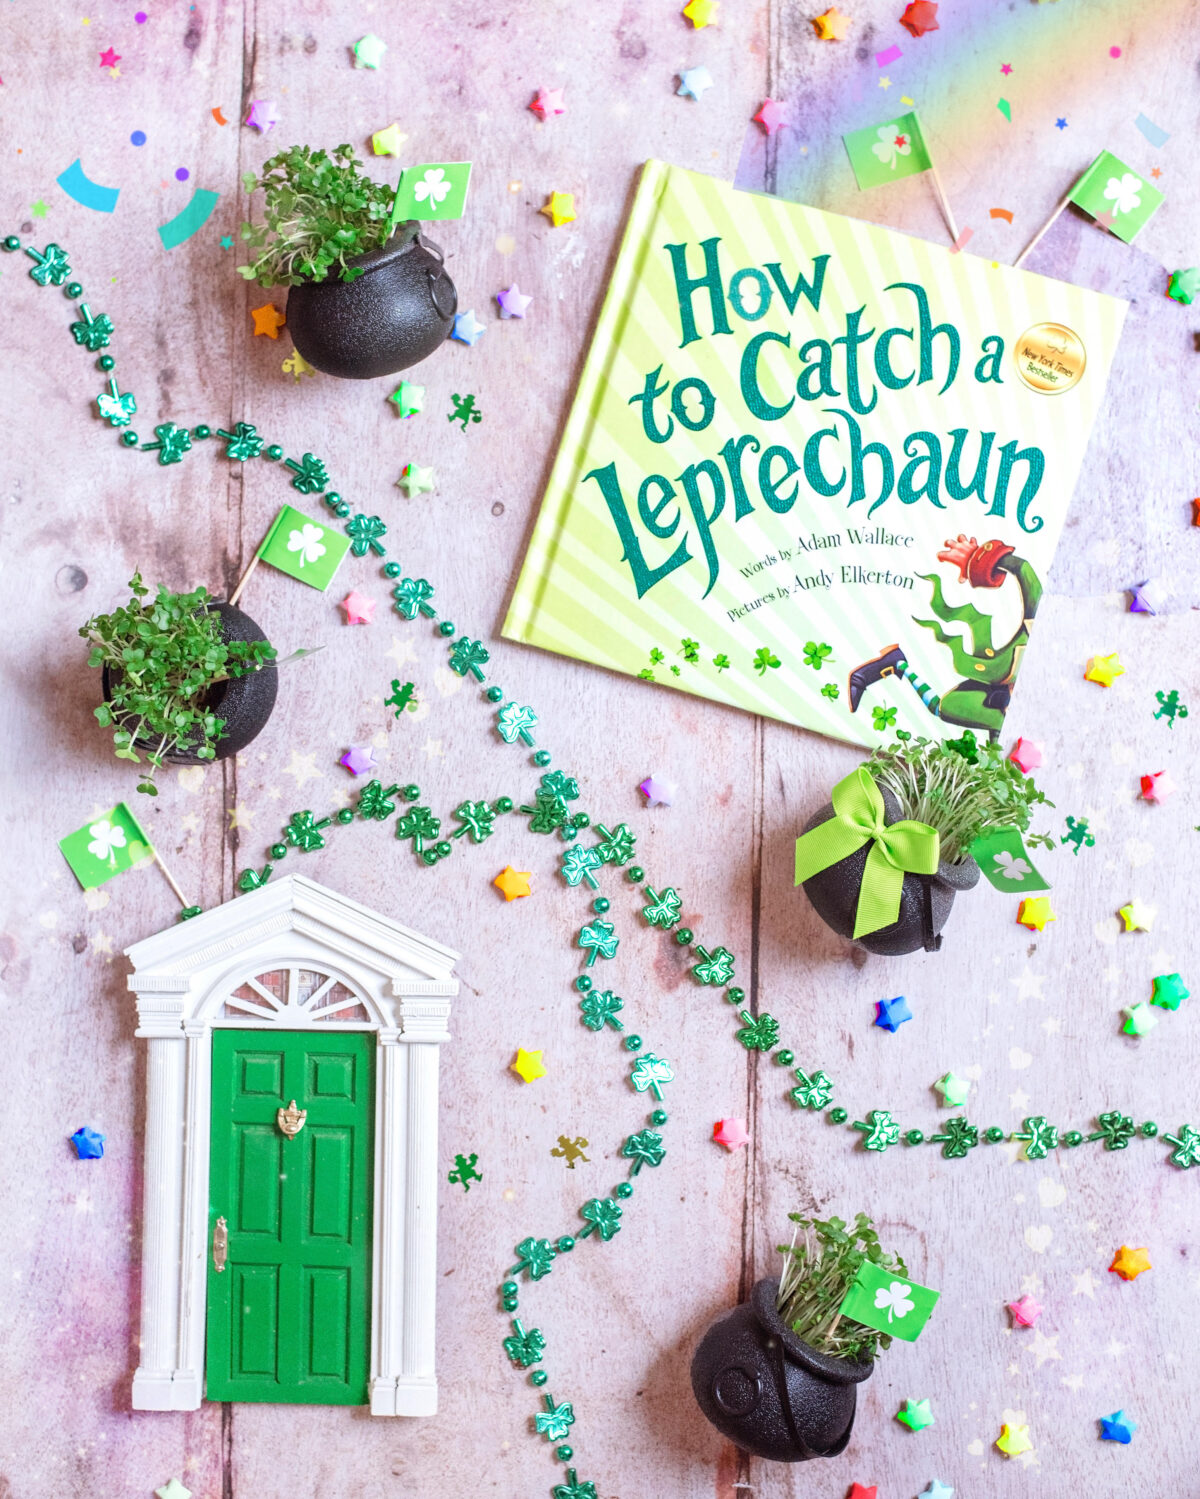 Image shows St. Patrick's Day Leprechaun door, rainbow lucky stars, shamrock in little black cauldon pots of gold, green metallic shamrock necklaces and a  How to Catch a Leprechaun Book. Easy, last minute crafts for celebrating St. Patrick's day with kids complete with supply list.